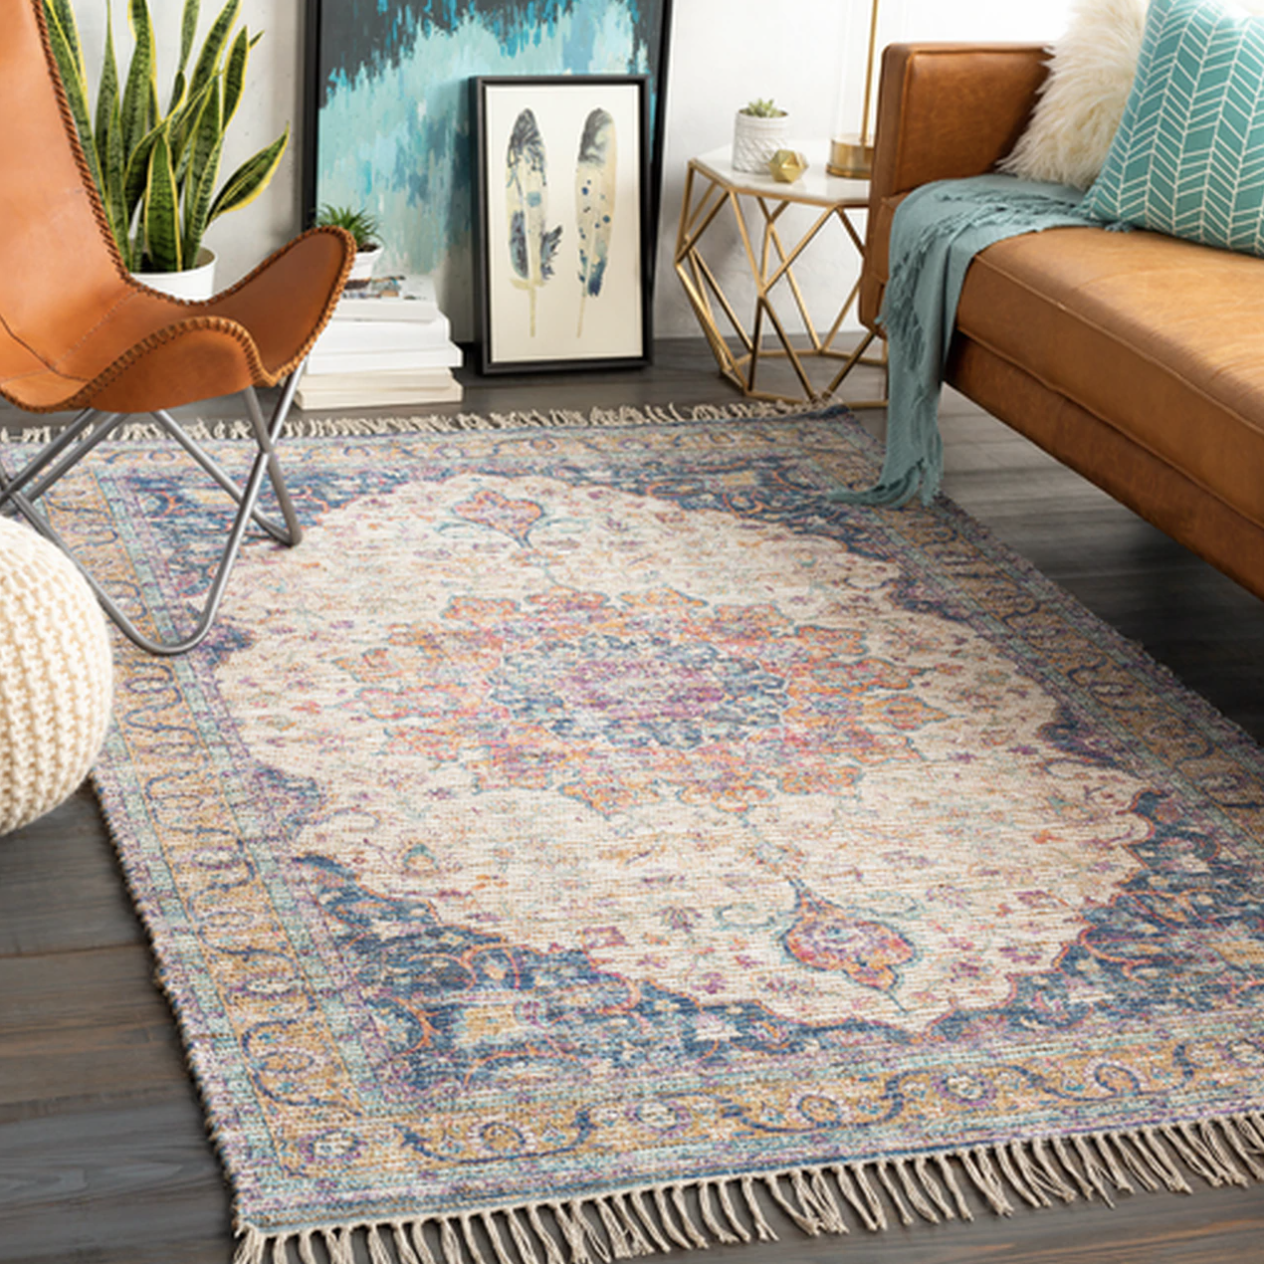 A rectangular rug with a khaki, saffron, violet, aqua, and white faded floral design and white tassels